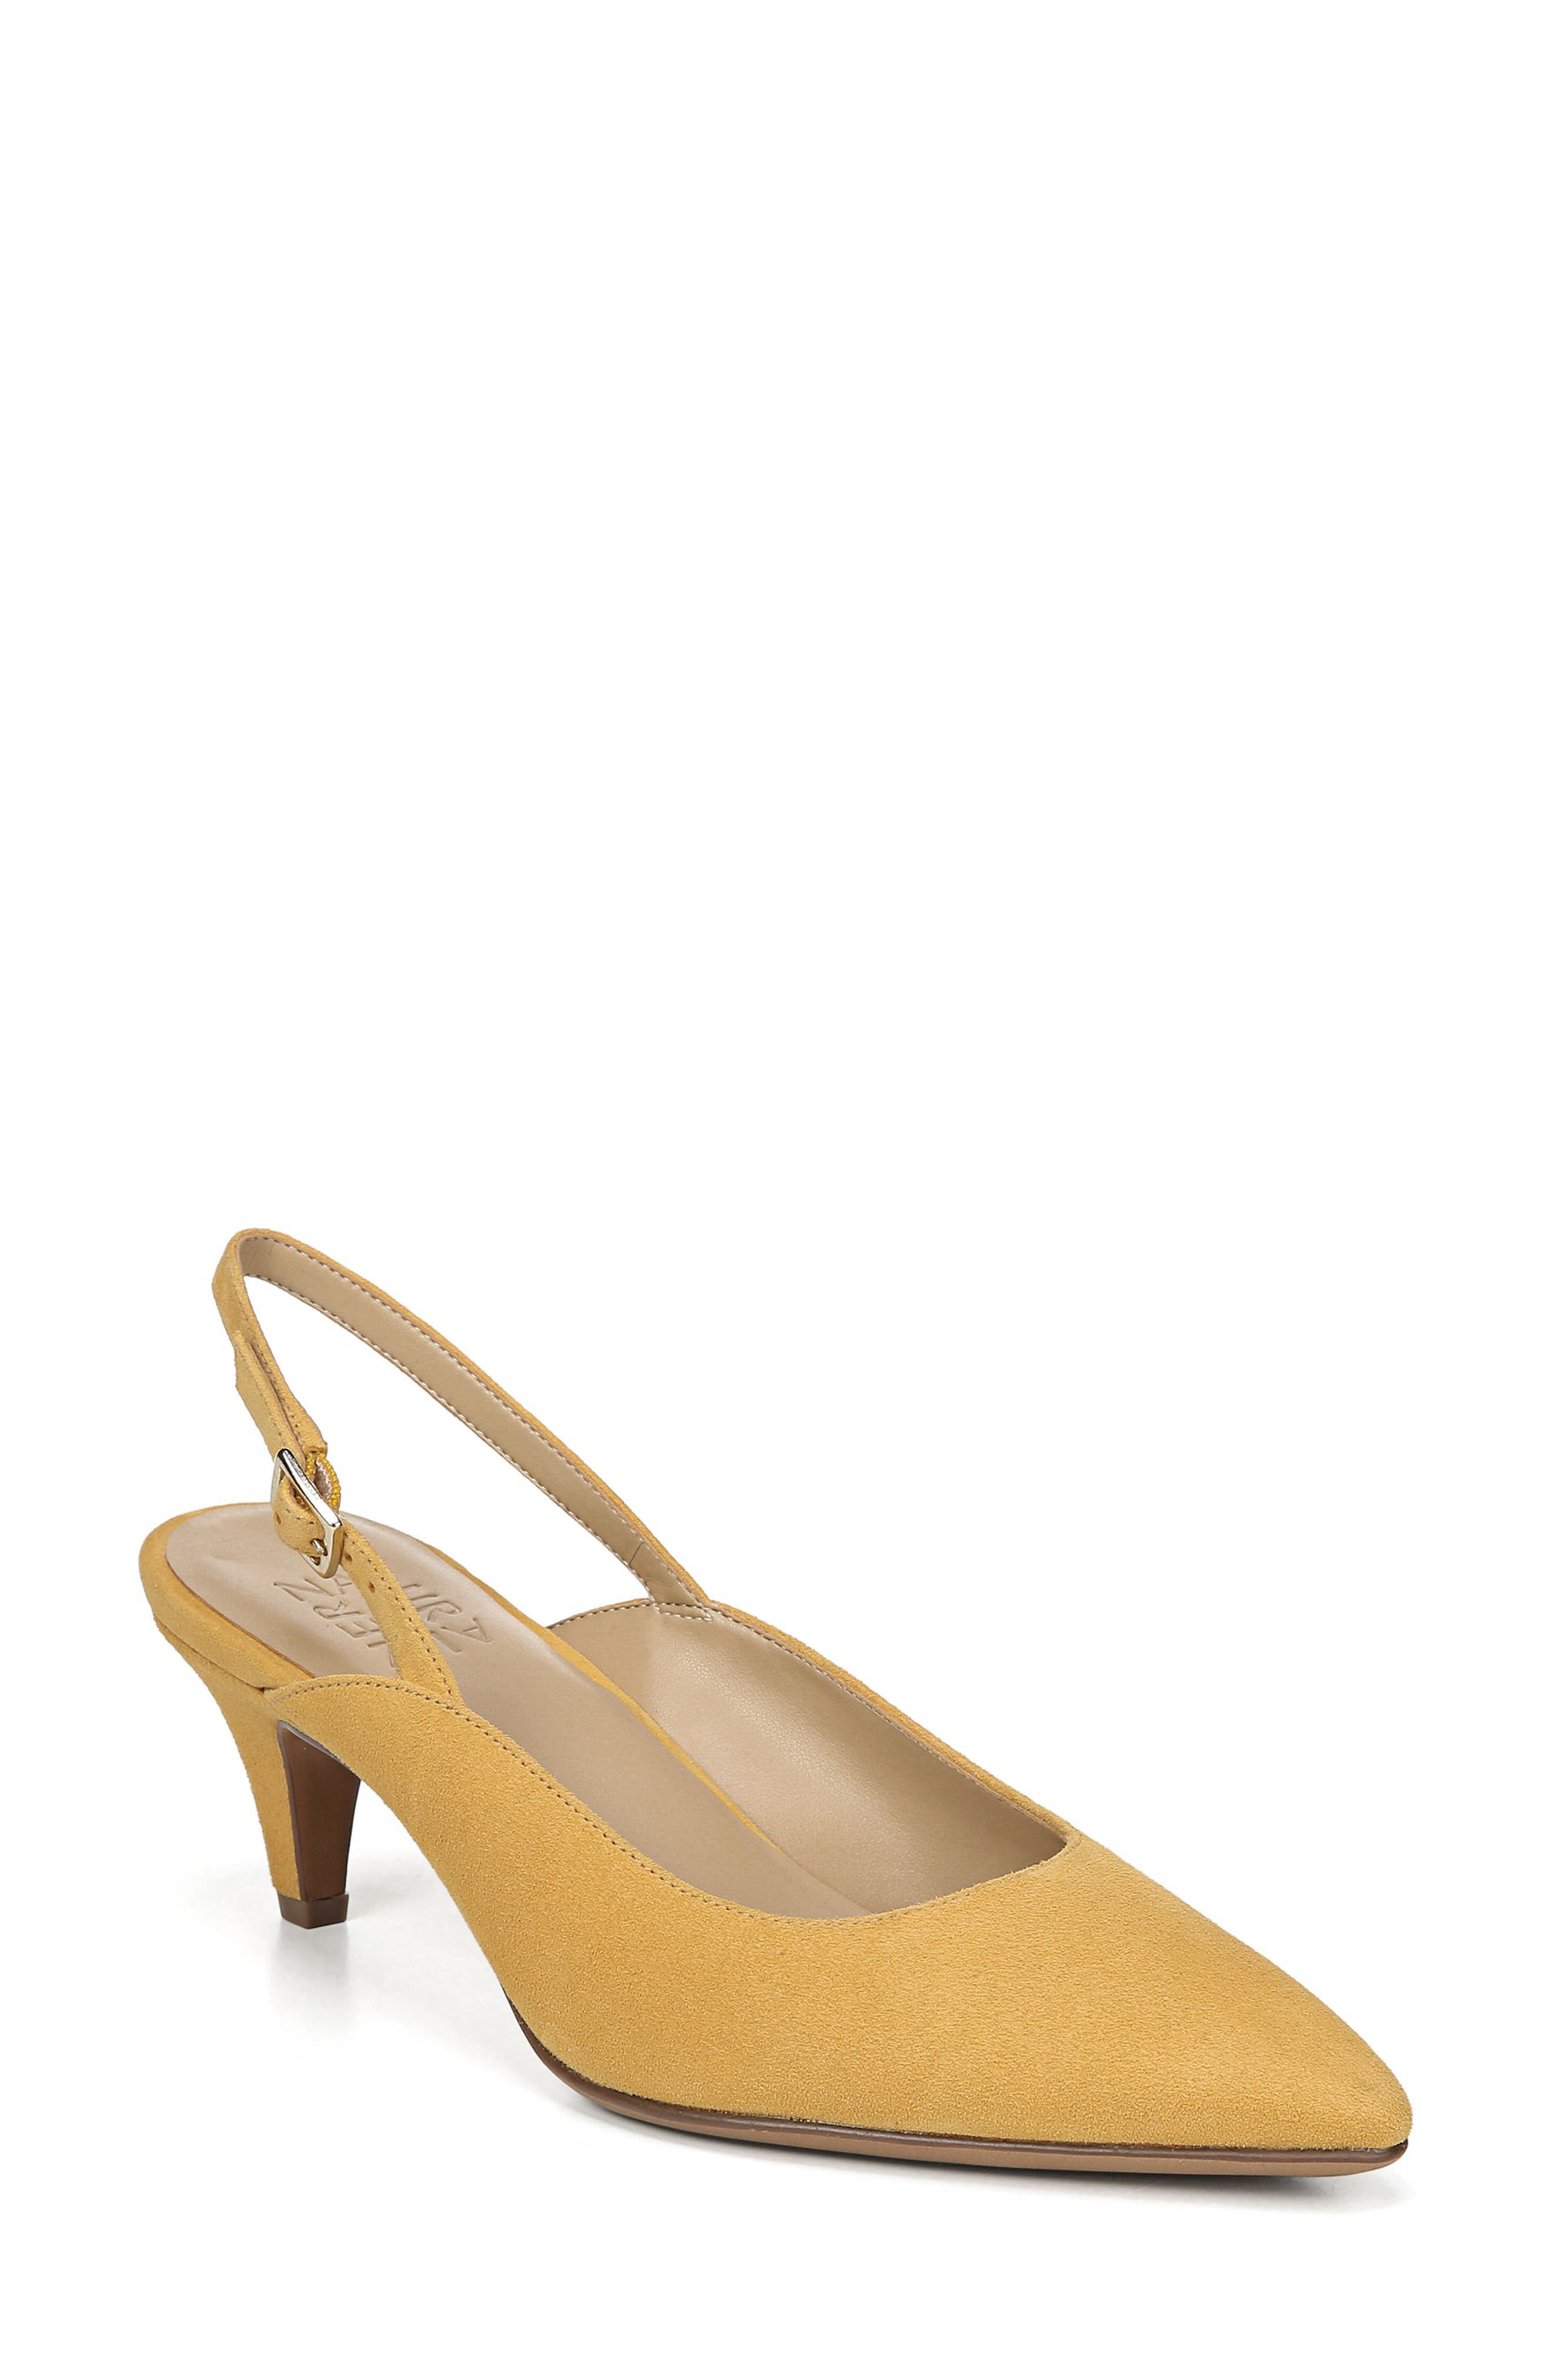 Naturalizer Baylee Slingback Pump, Yellow